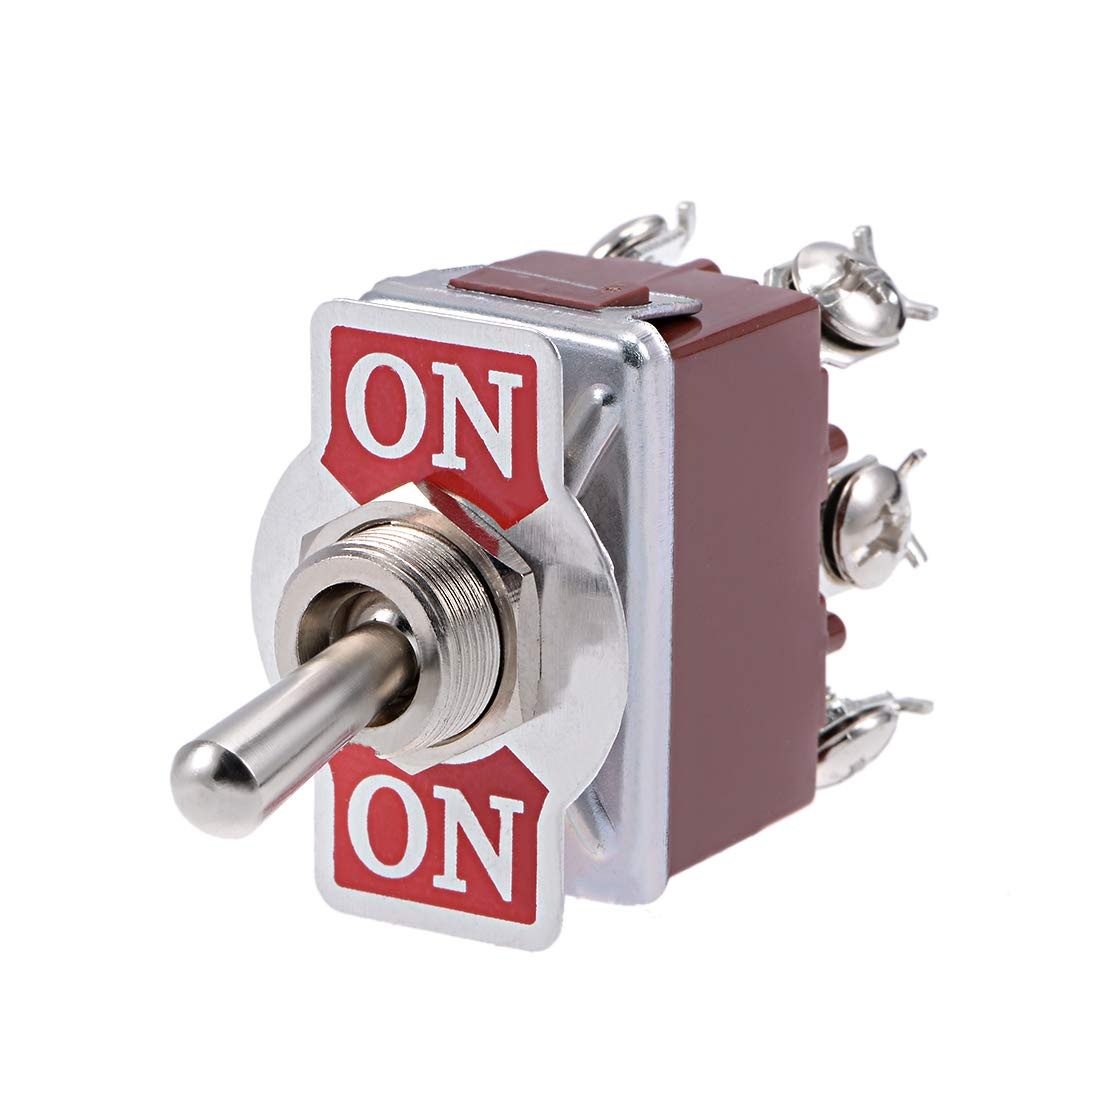 uxcell DPDT Momentary Rocker Toggle Switch Heavy-Duty 15A 250V 6P ON//ON Metal Bat 1pcs